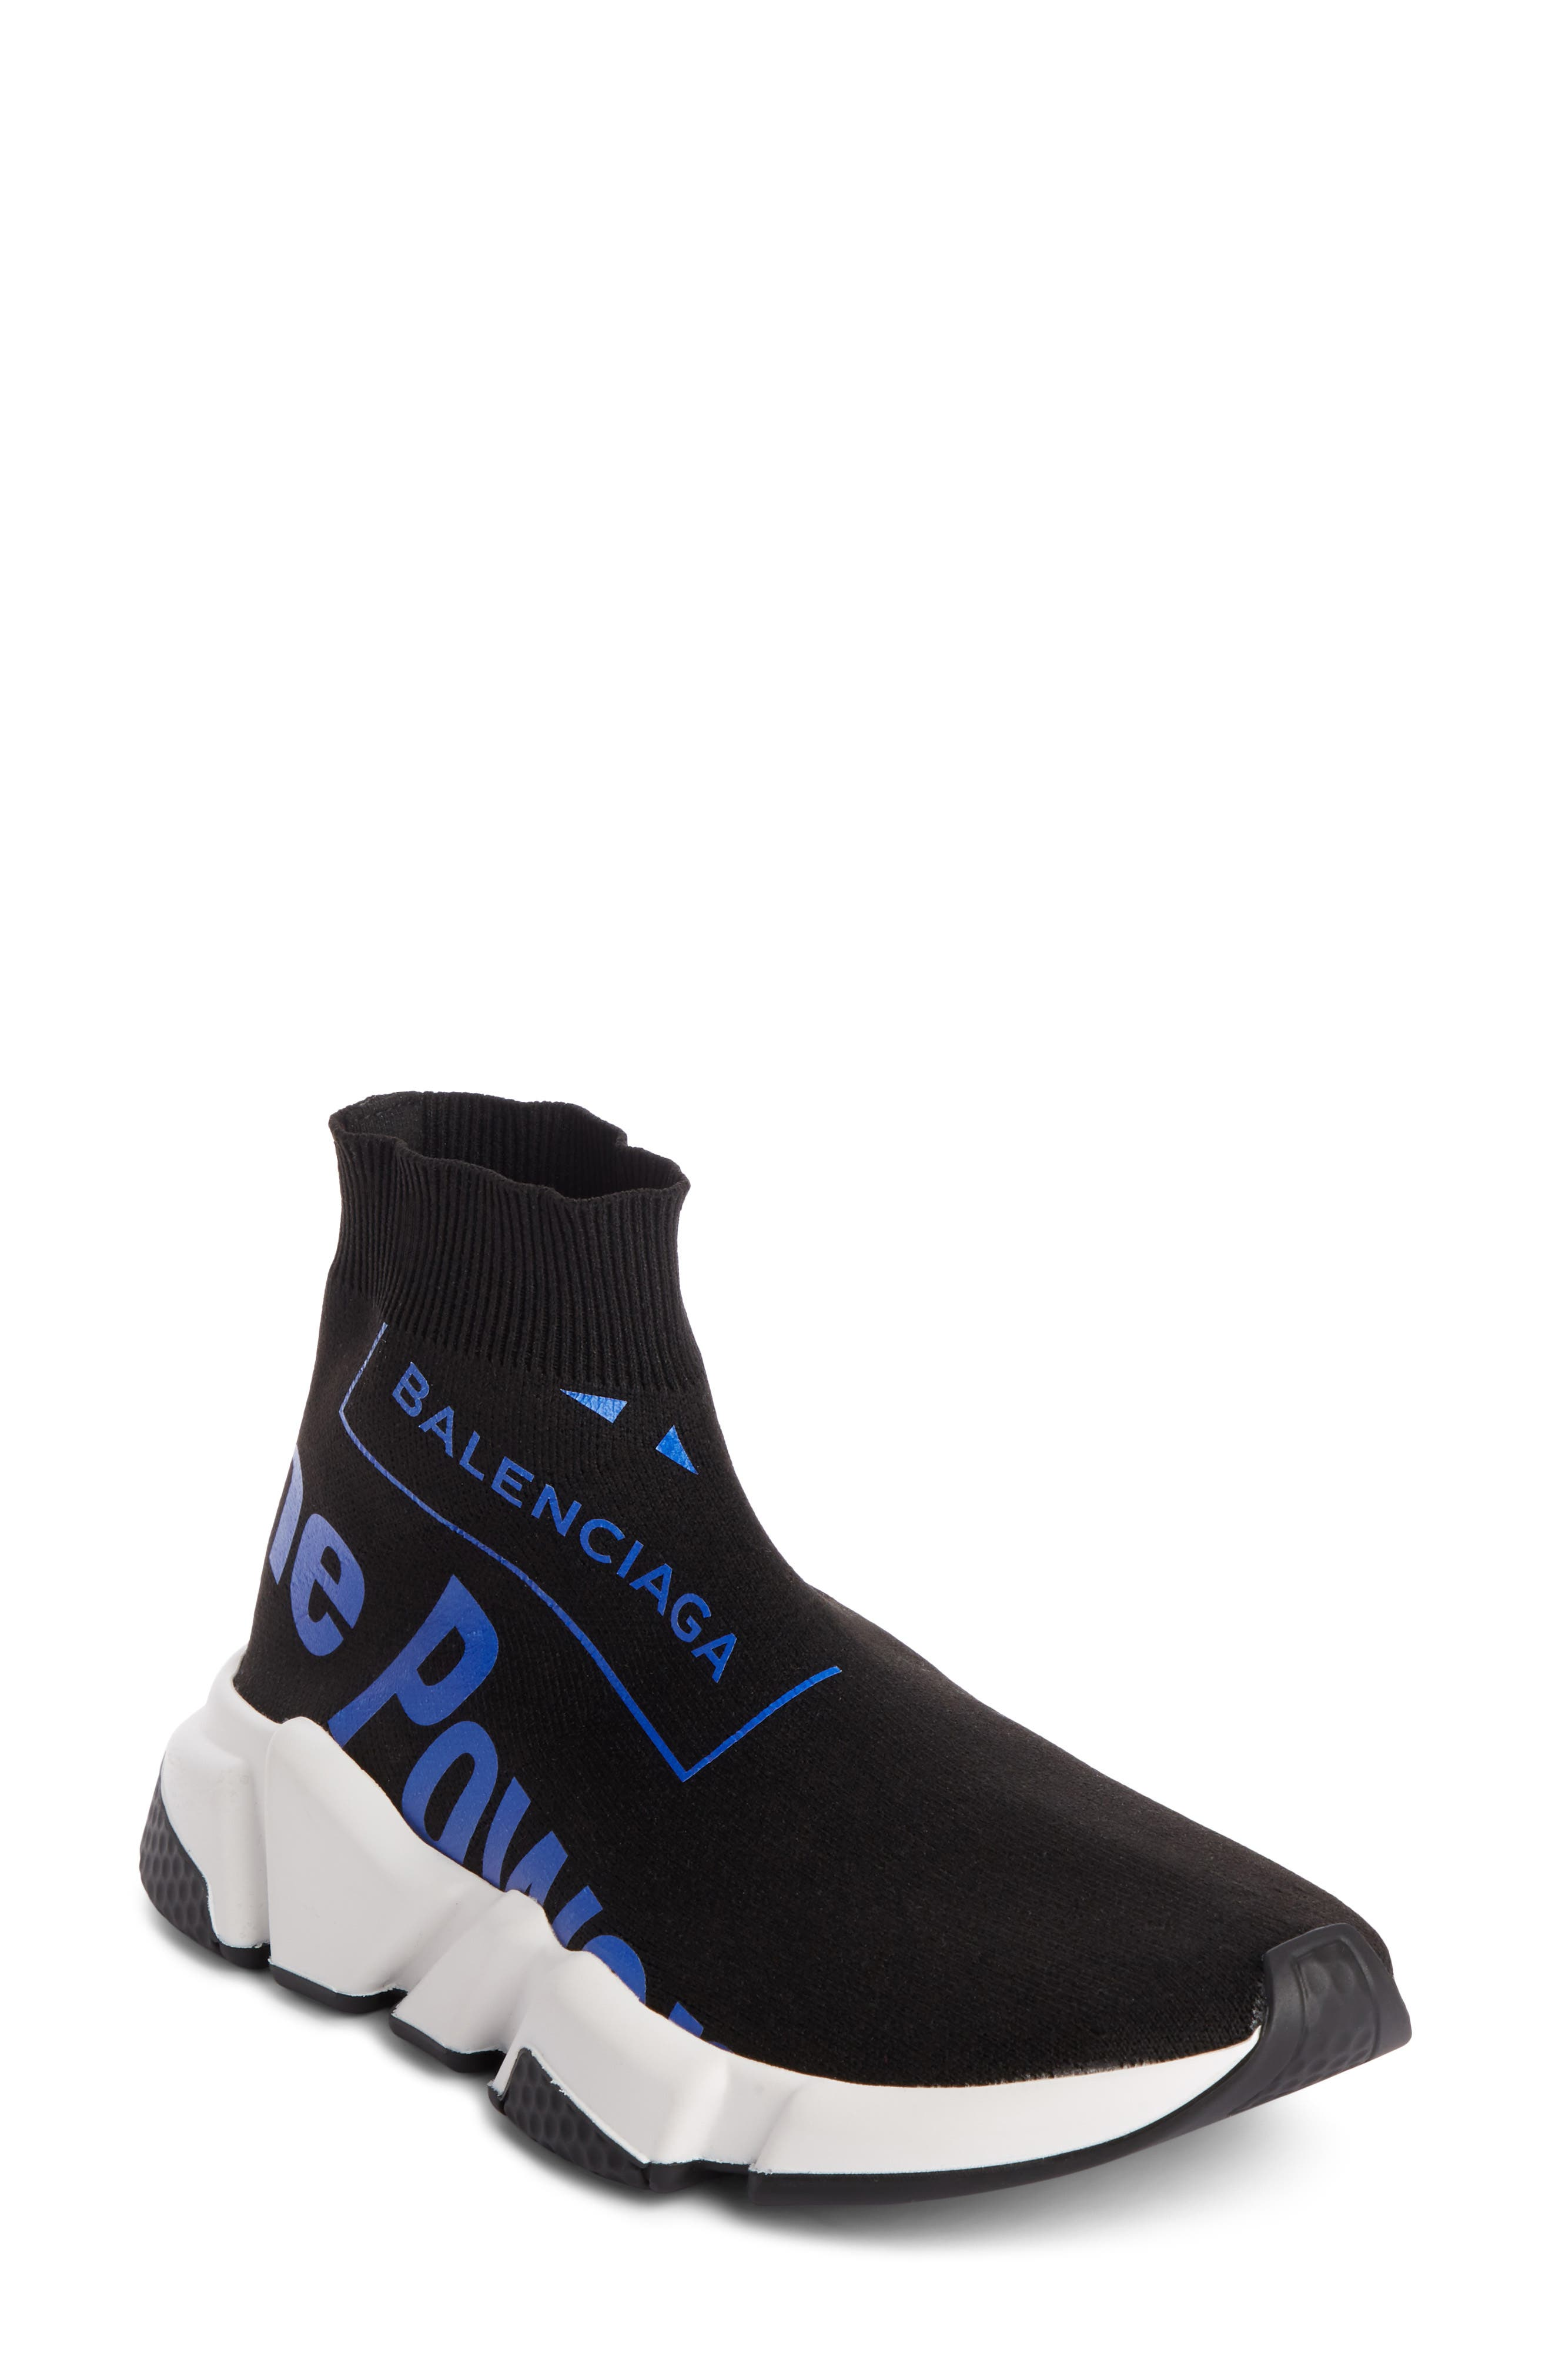 Dream Speed Trainer Sneaker,                             Main thumbnail 1, color,                             BLACK/ BLUE